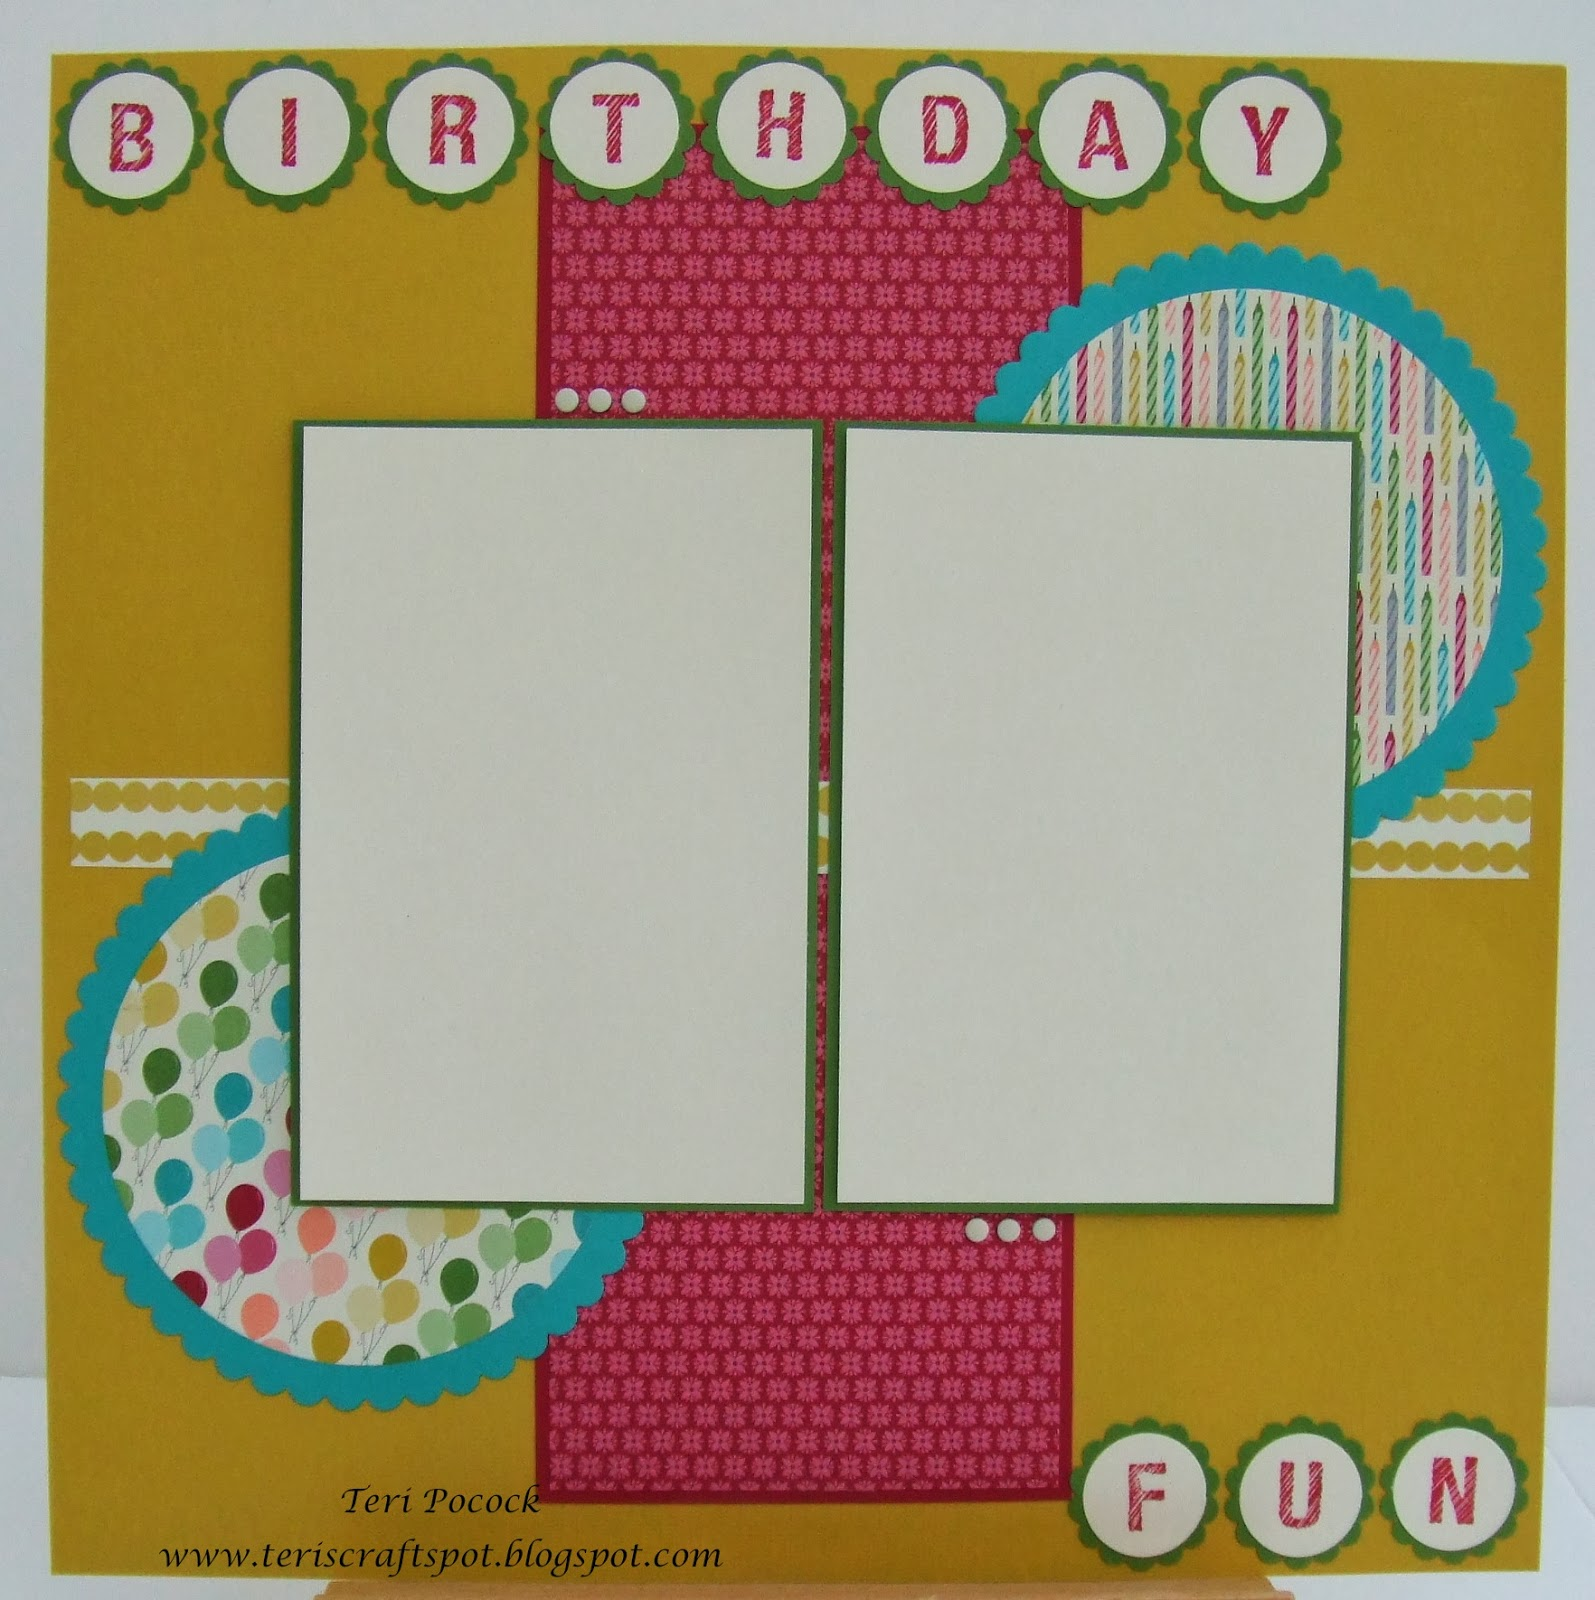 Stampin' Up! UK Demonstrator - Teri Pocock: Birthday Basics